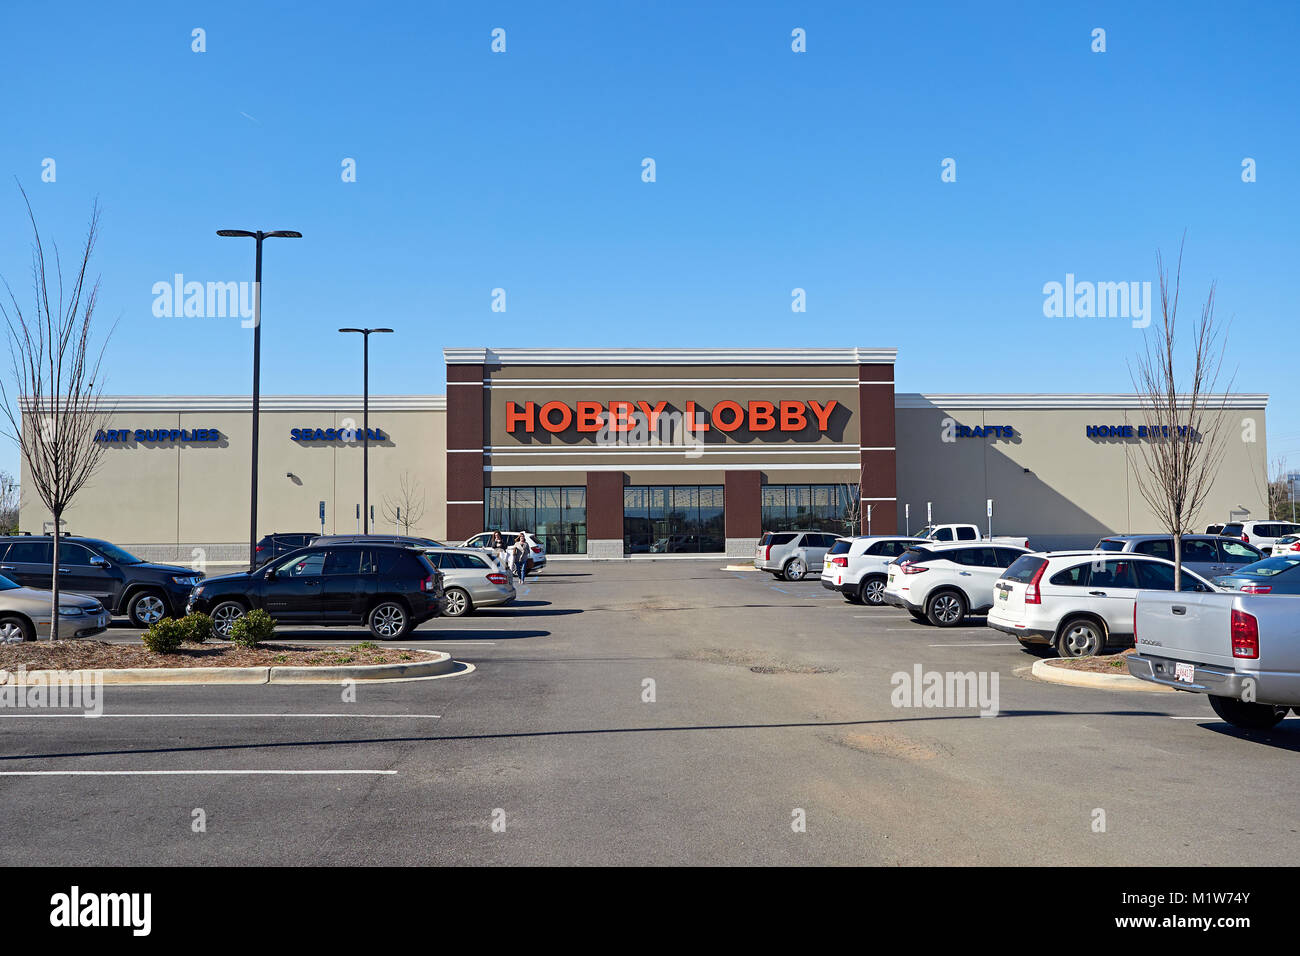 Front exterior entrance to the Hobby Lobby arts and crafts store in Montgomery Alabama, USA. - Stock Image